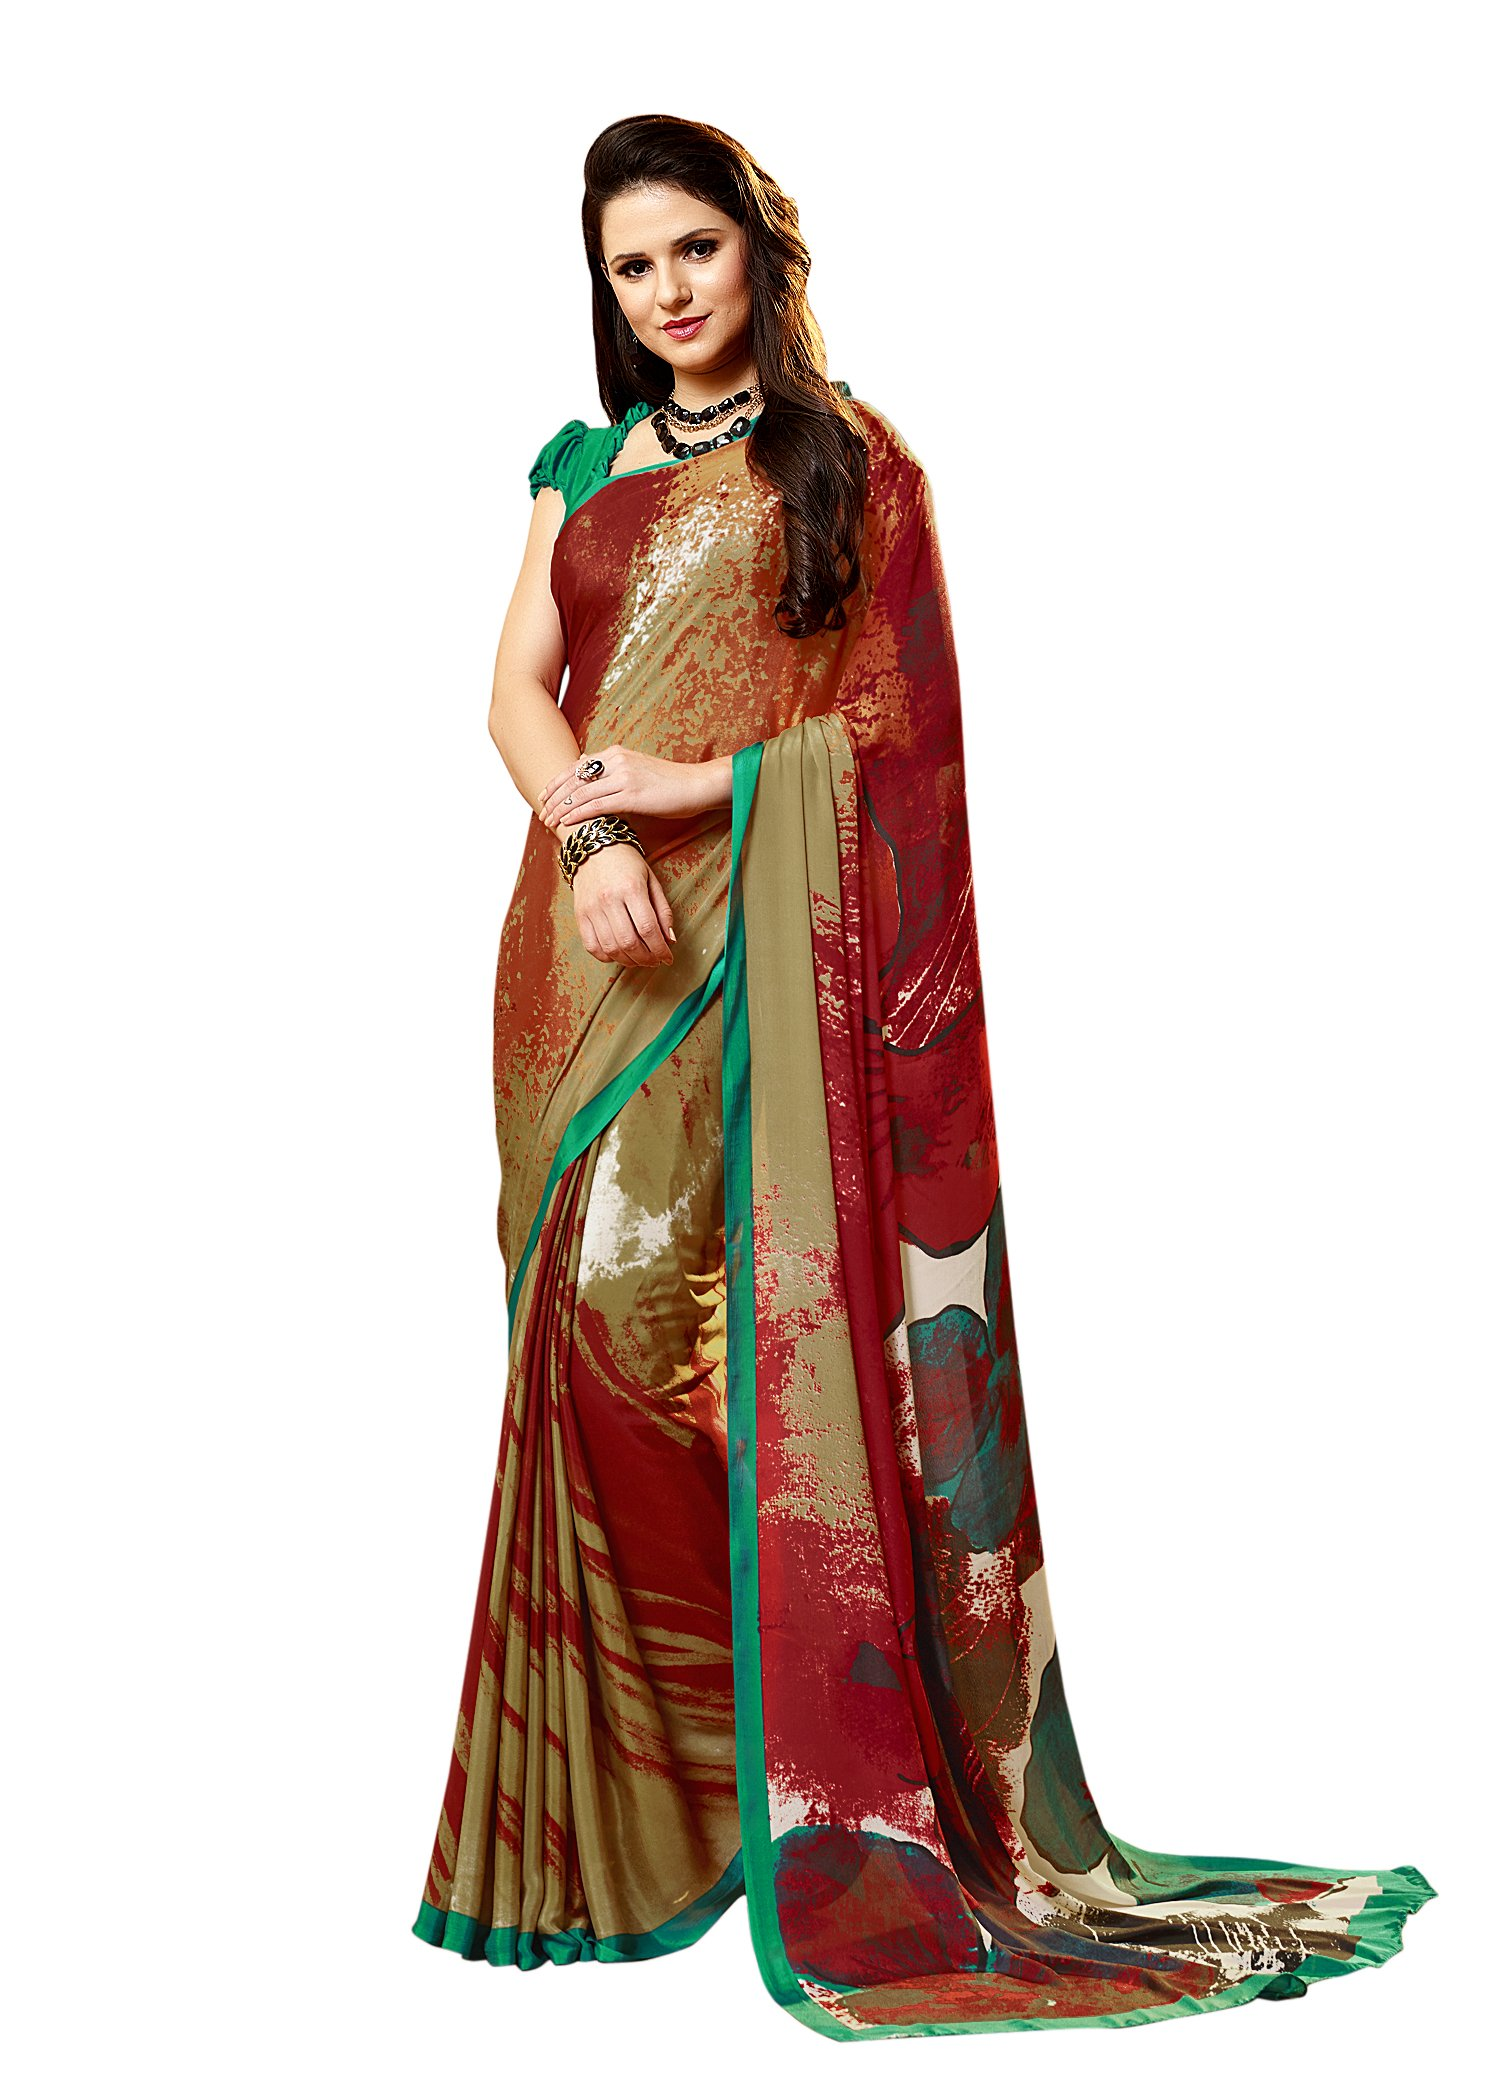 c62e17da1b Cheap New Printed Saree Designs, find New Printed Saree Designs ...